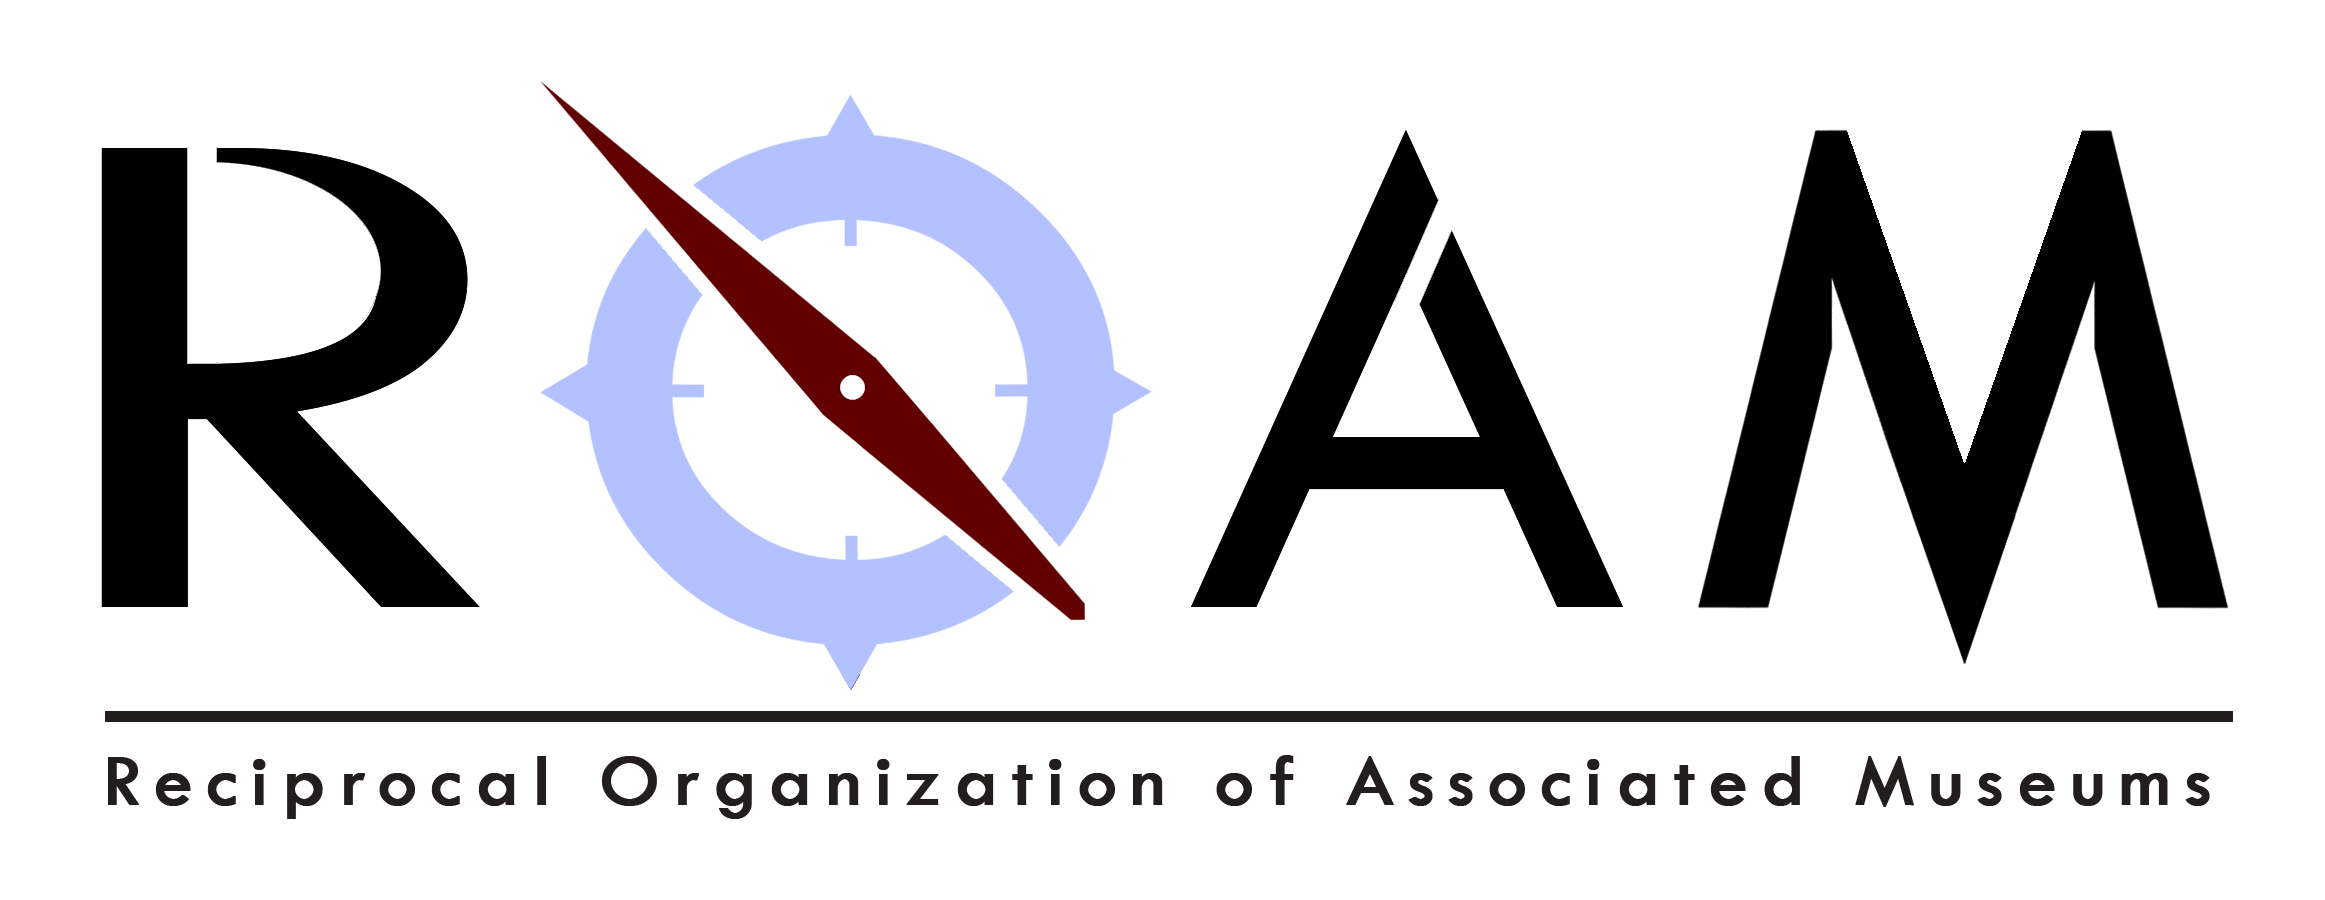 Member of Reciprocal Organization of Associated Museums